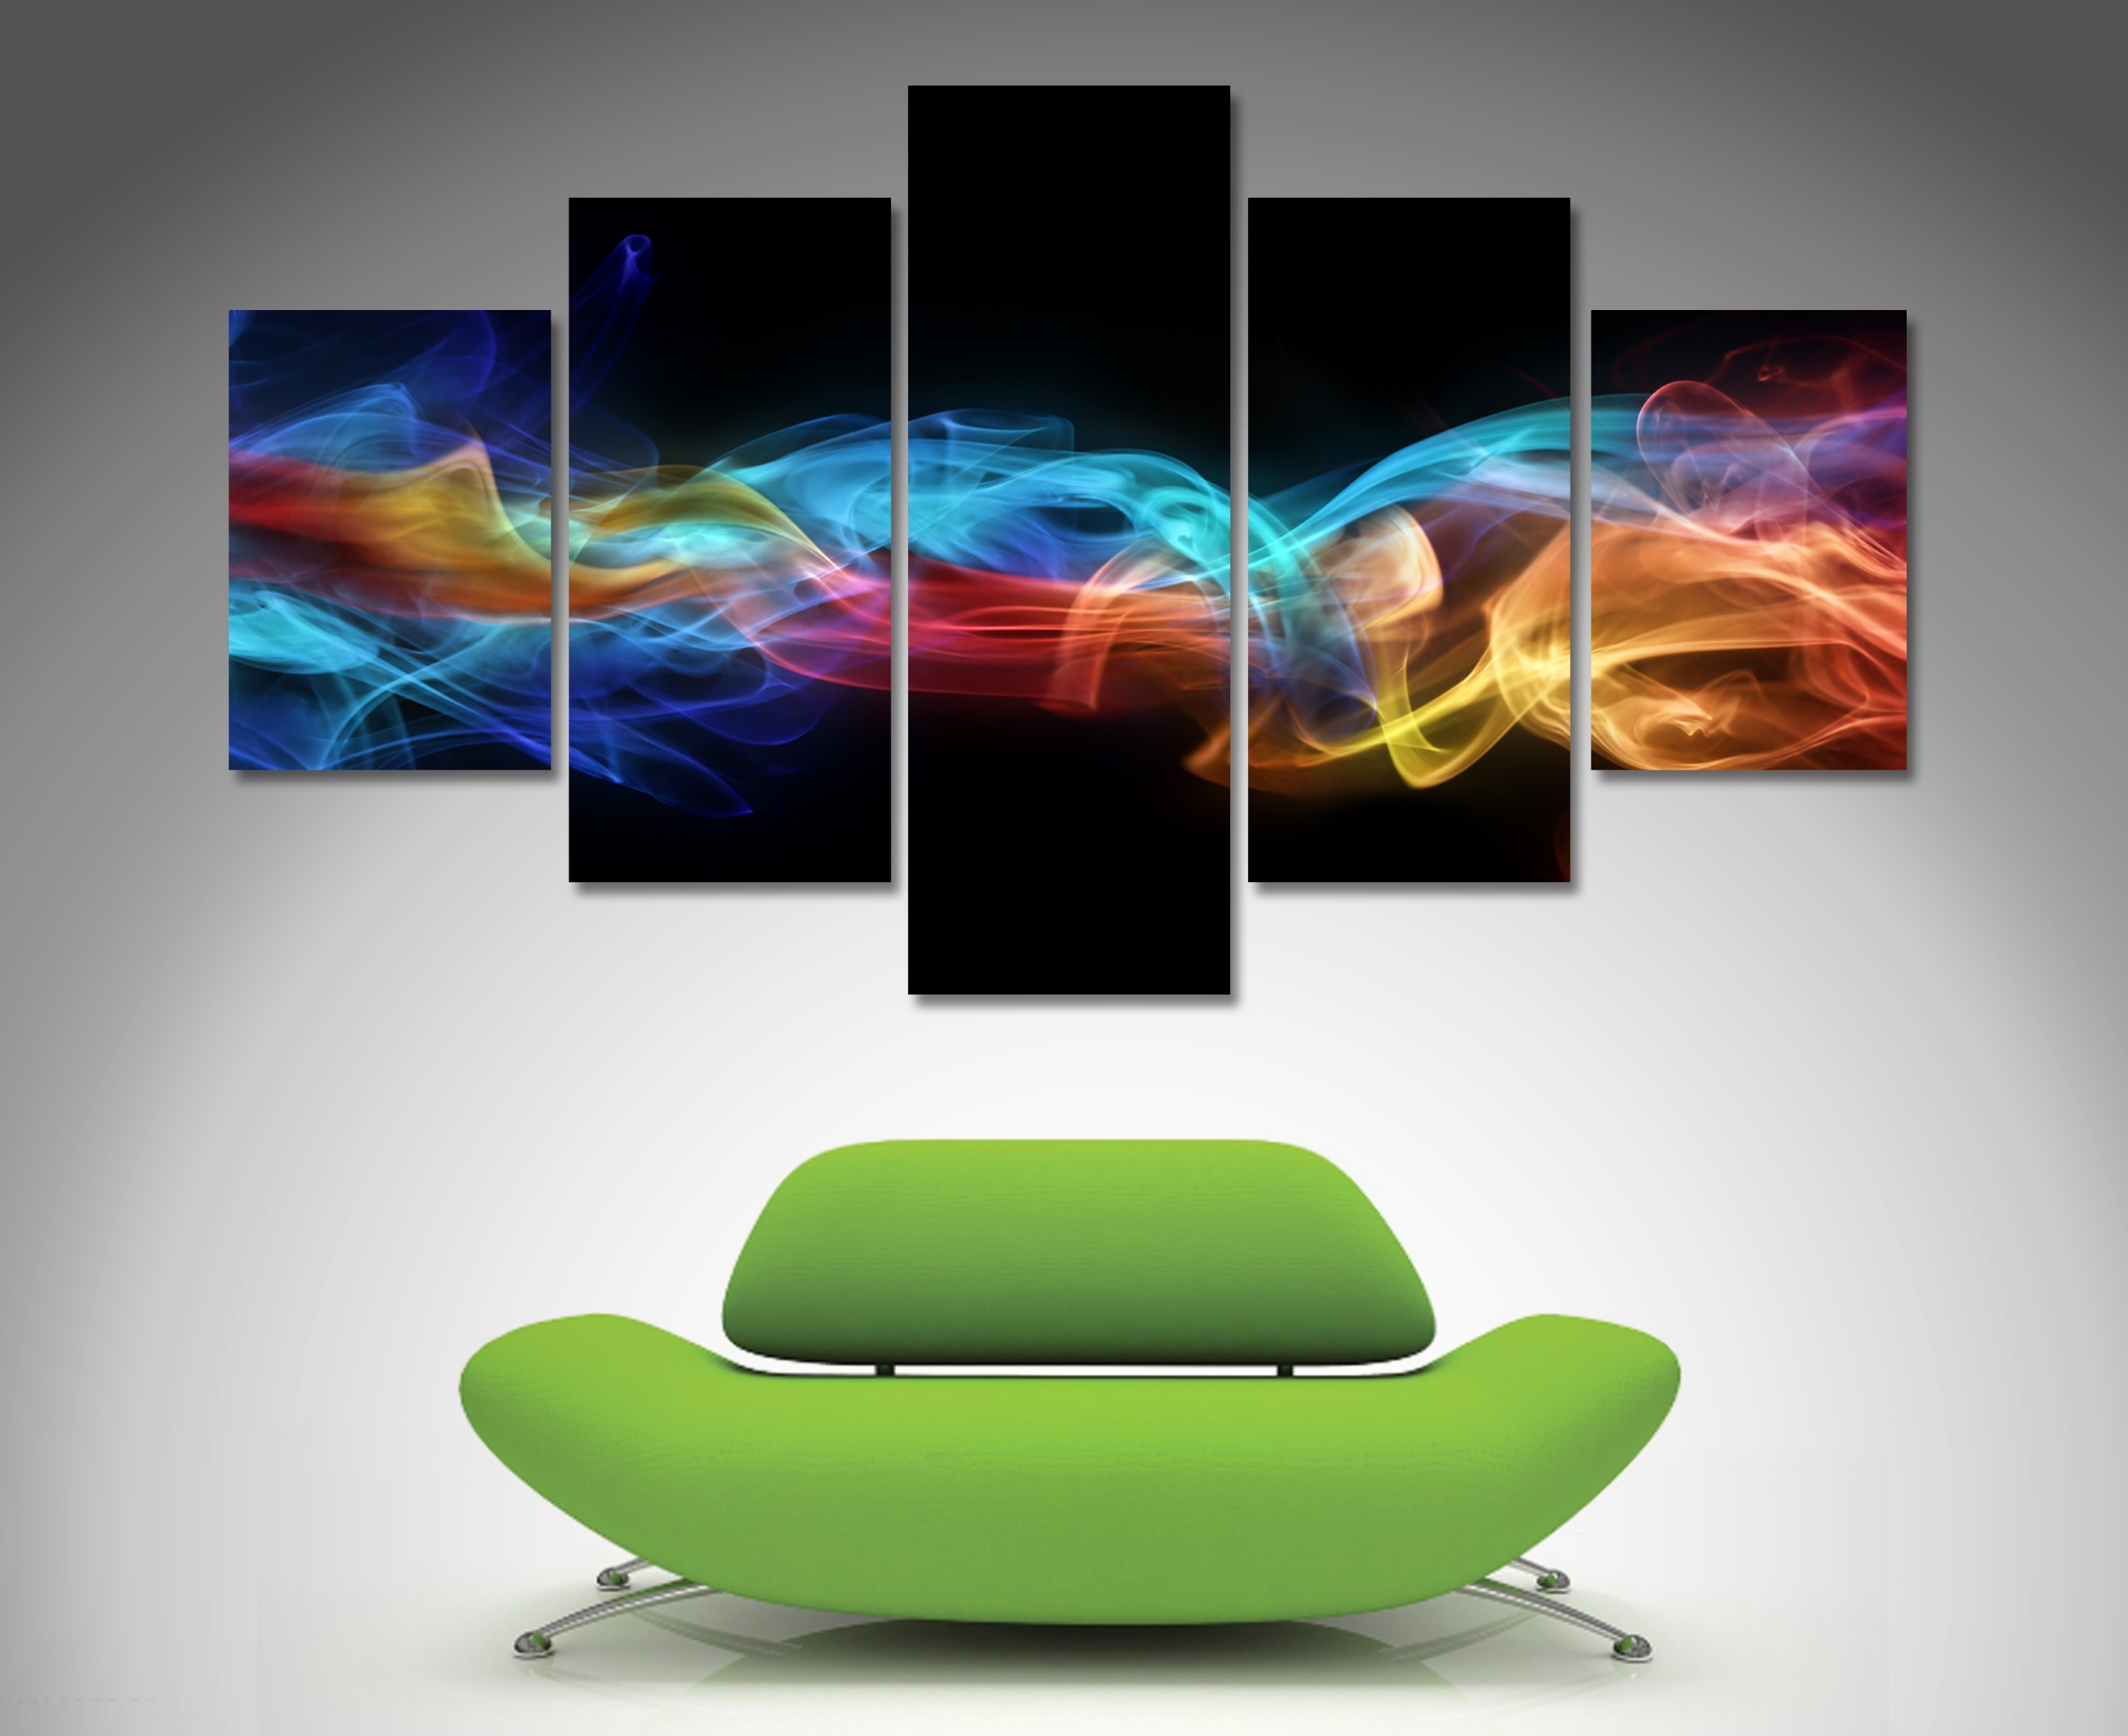 Fire And Ice 5 Panel Wall Art | Canvas Printing Australia For Most Recently Released 5 Panel Wall Art (View 8 of 20)